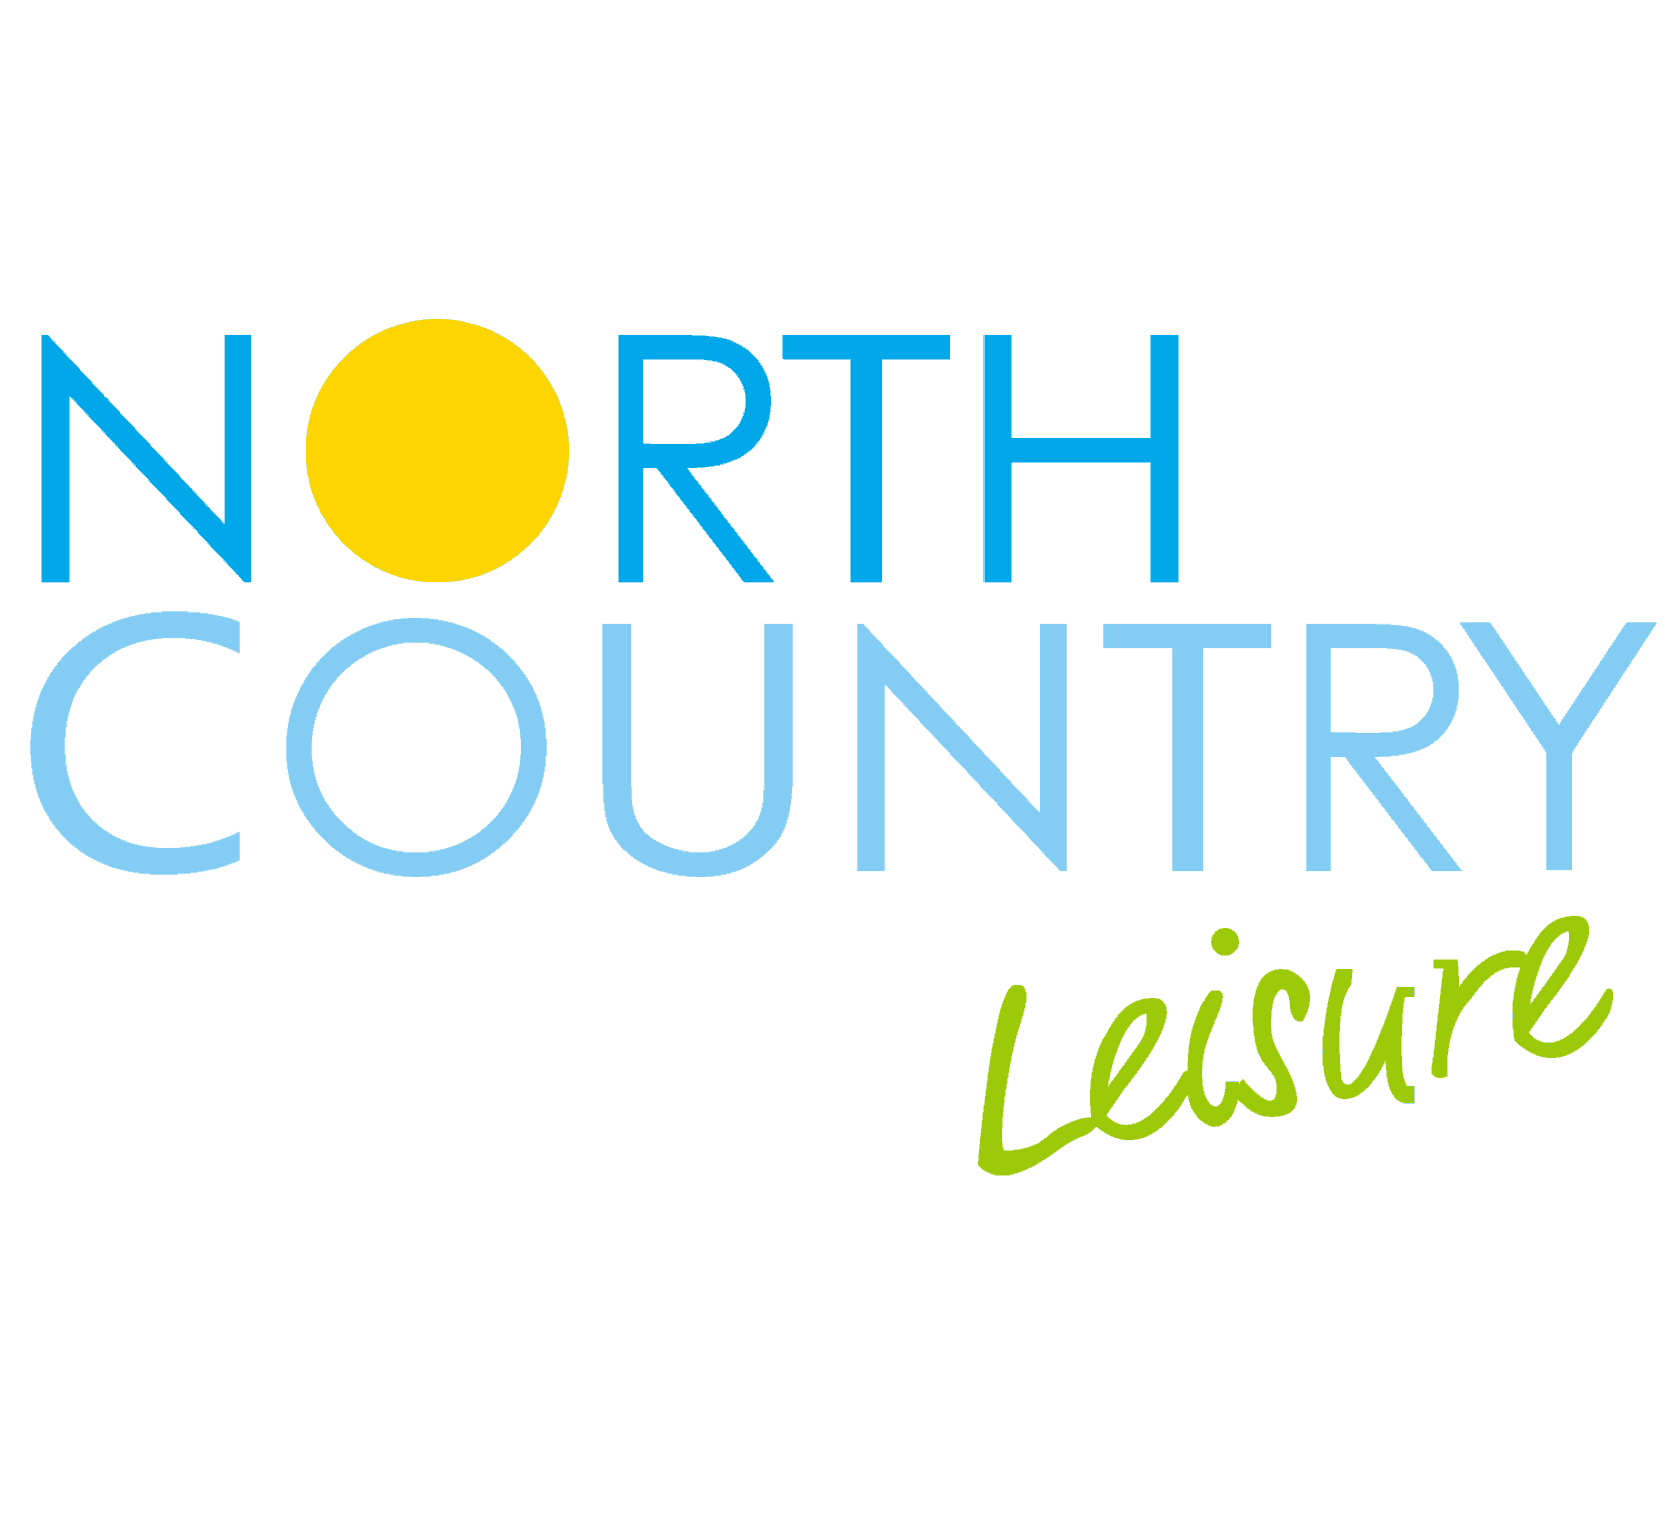 North Country Leisure